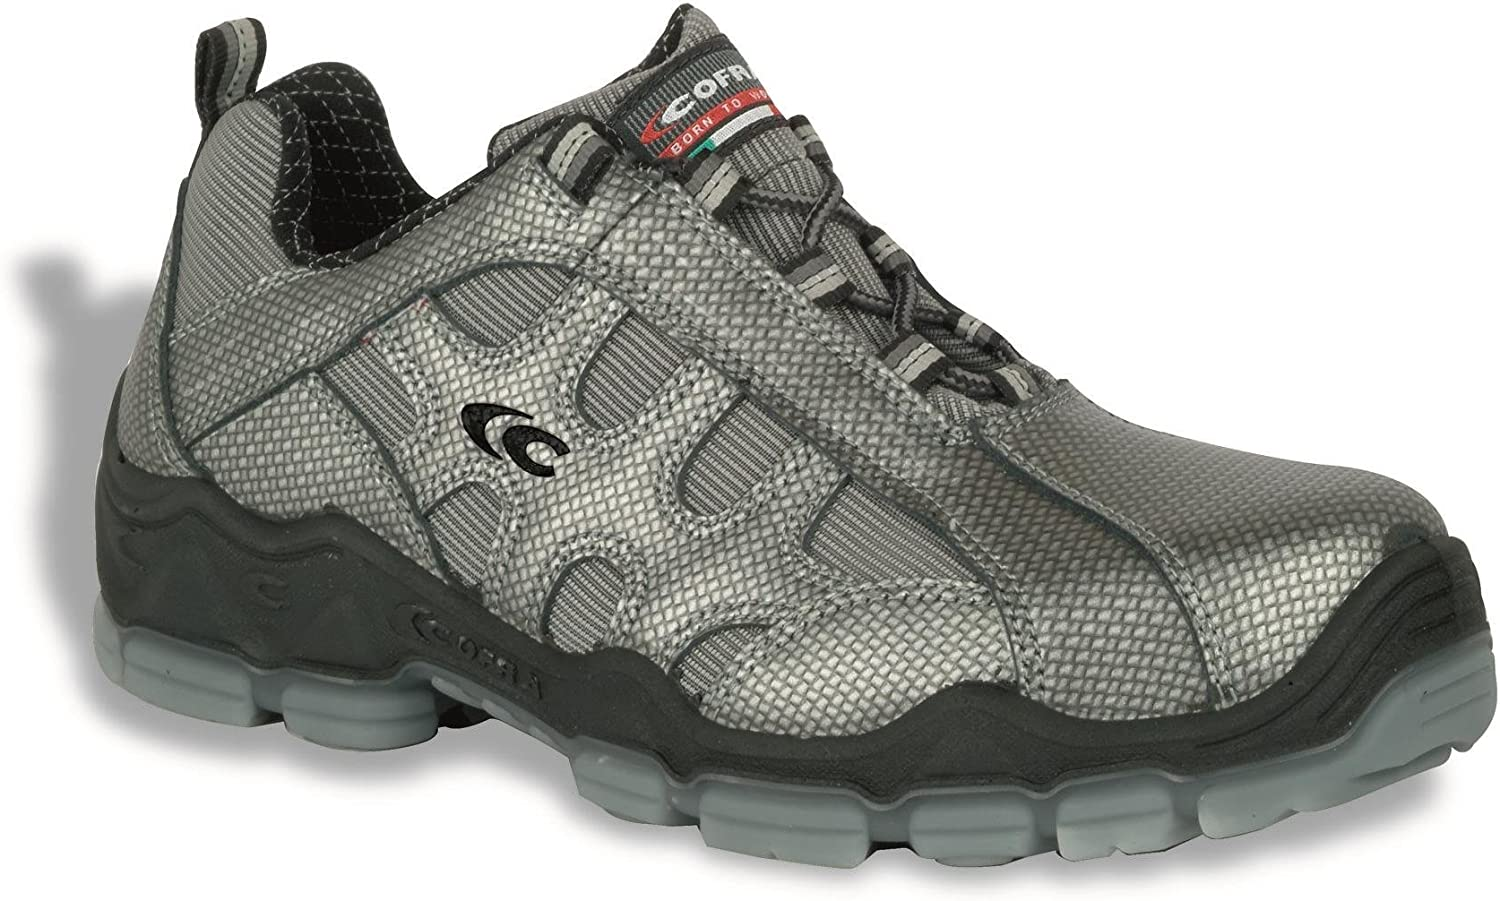 Cofra 20030-000.W45 Size 45 S1 P SRC  Miro  Safety shoes - Grey - EN safety certified